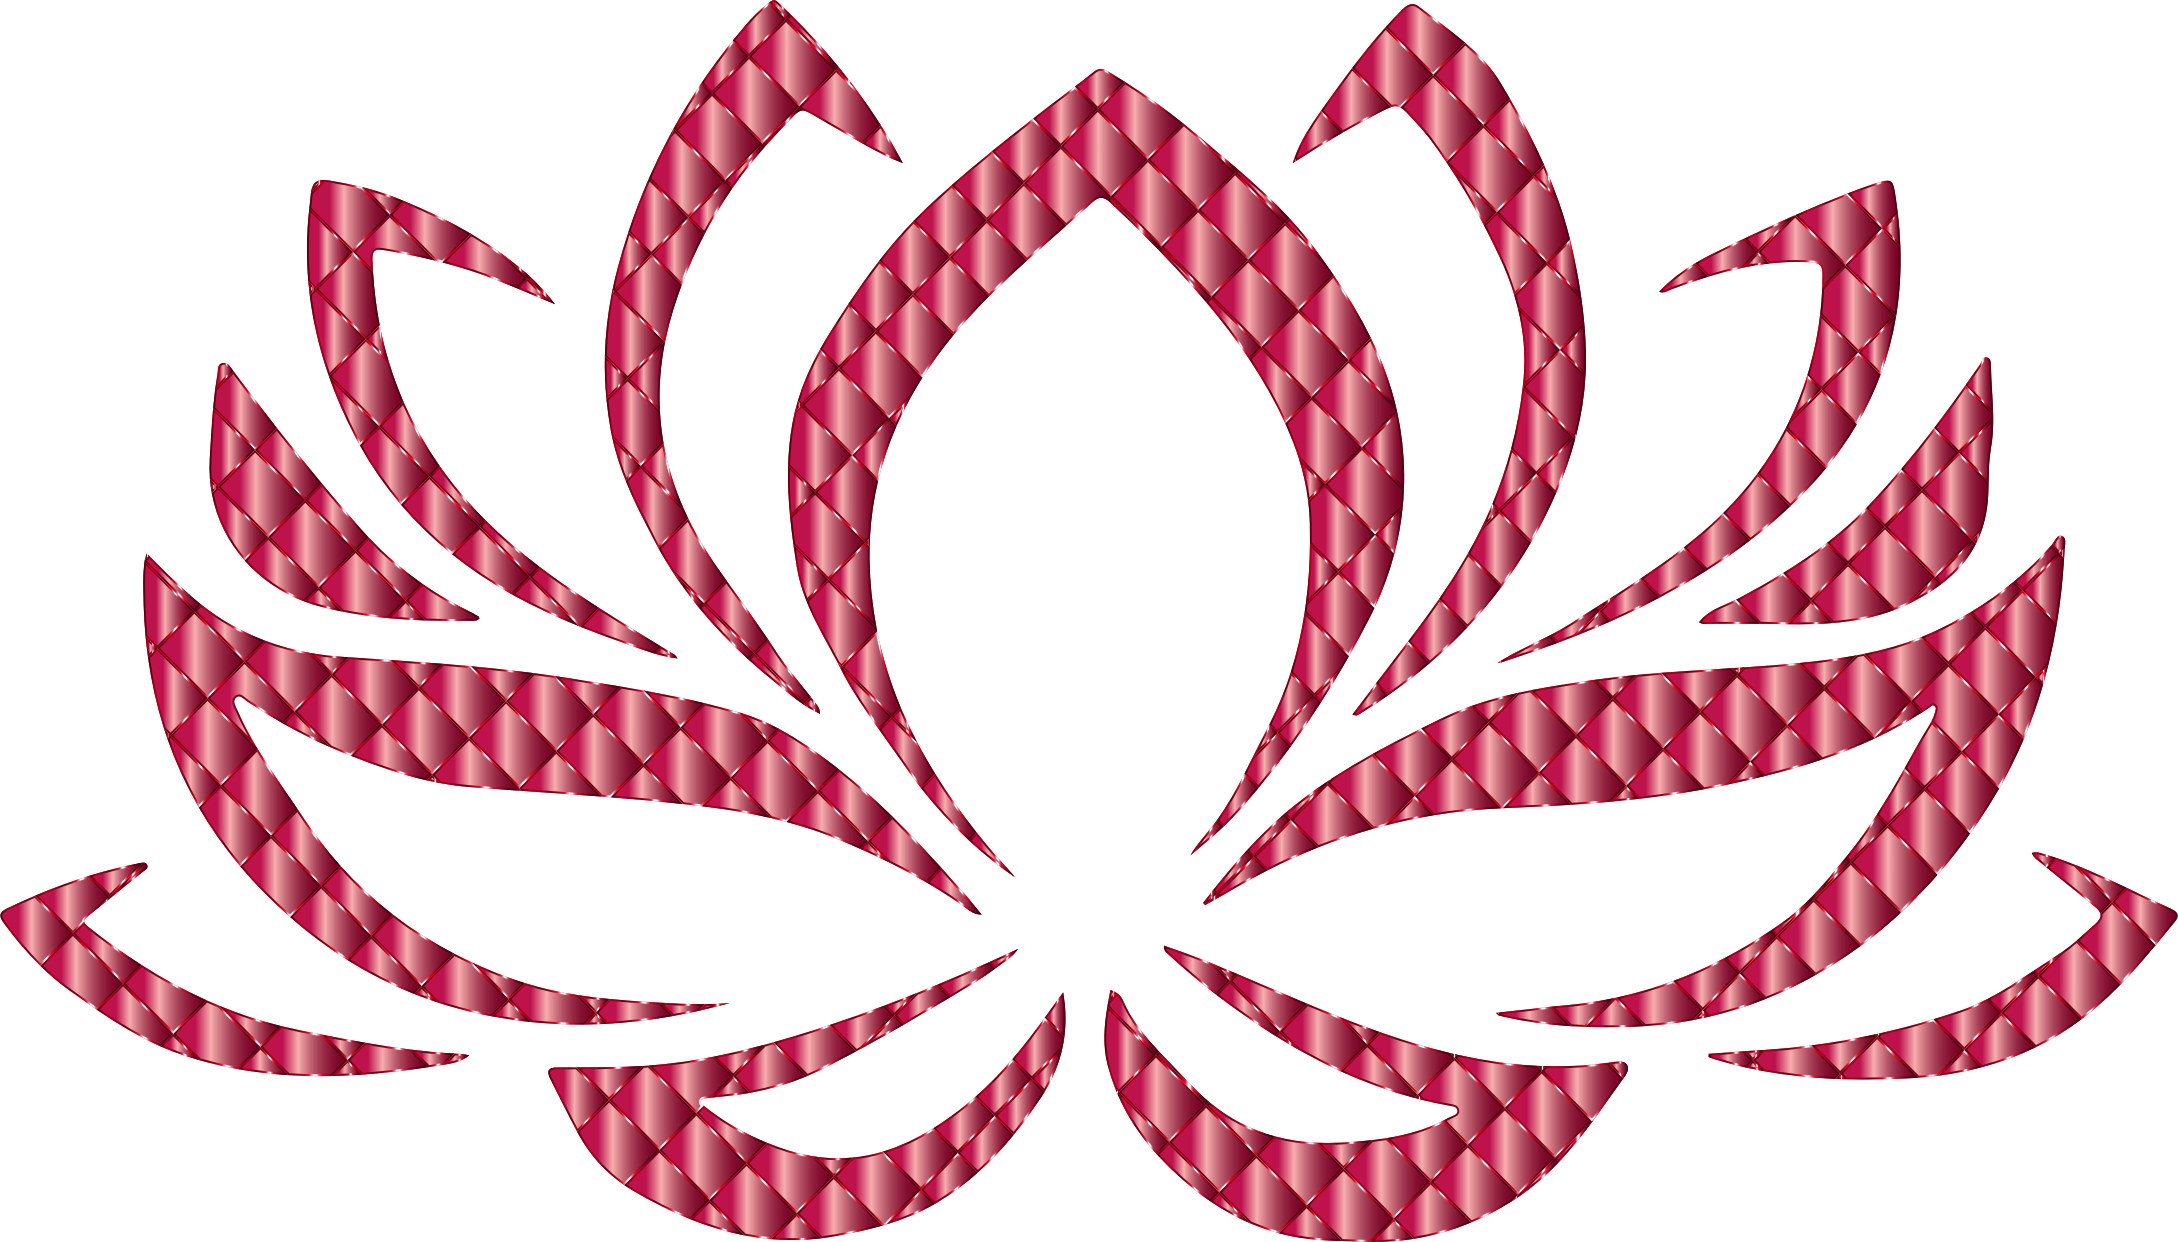 Flower transparent clipart png free Clipart - Ruby Lotus Flower No Background png free